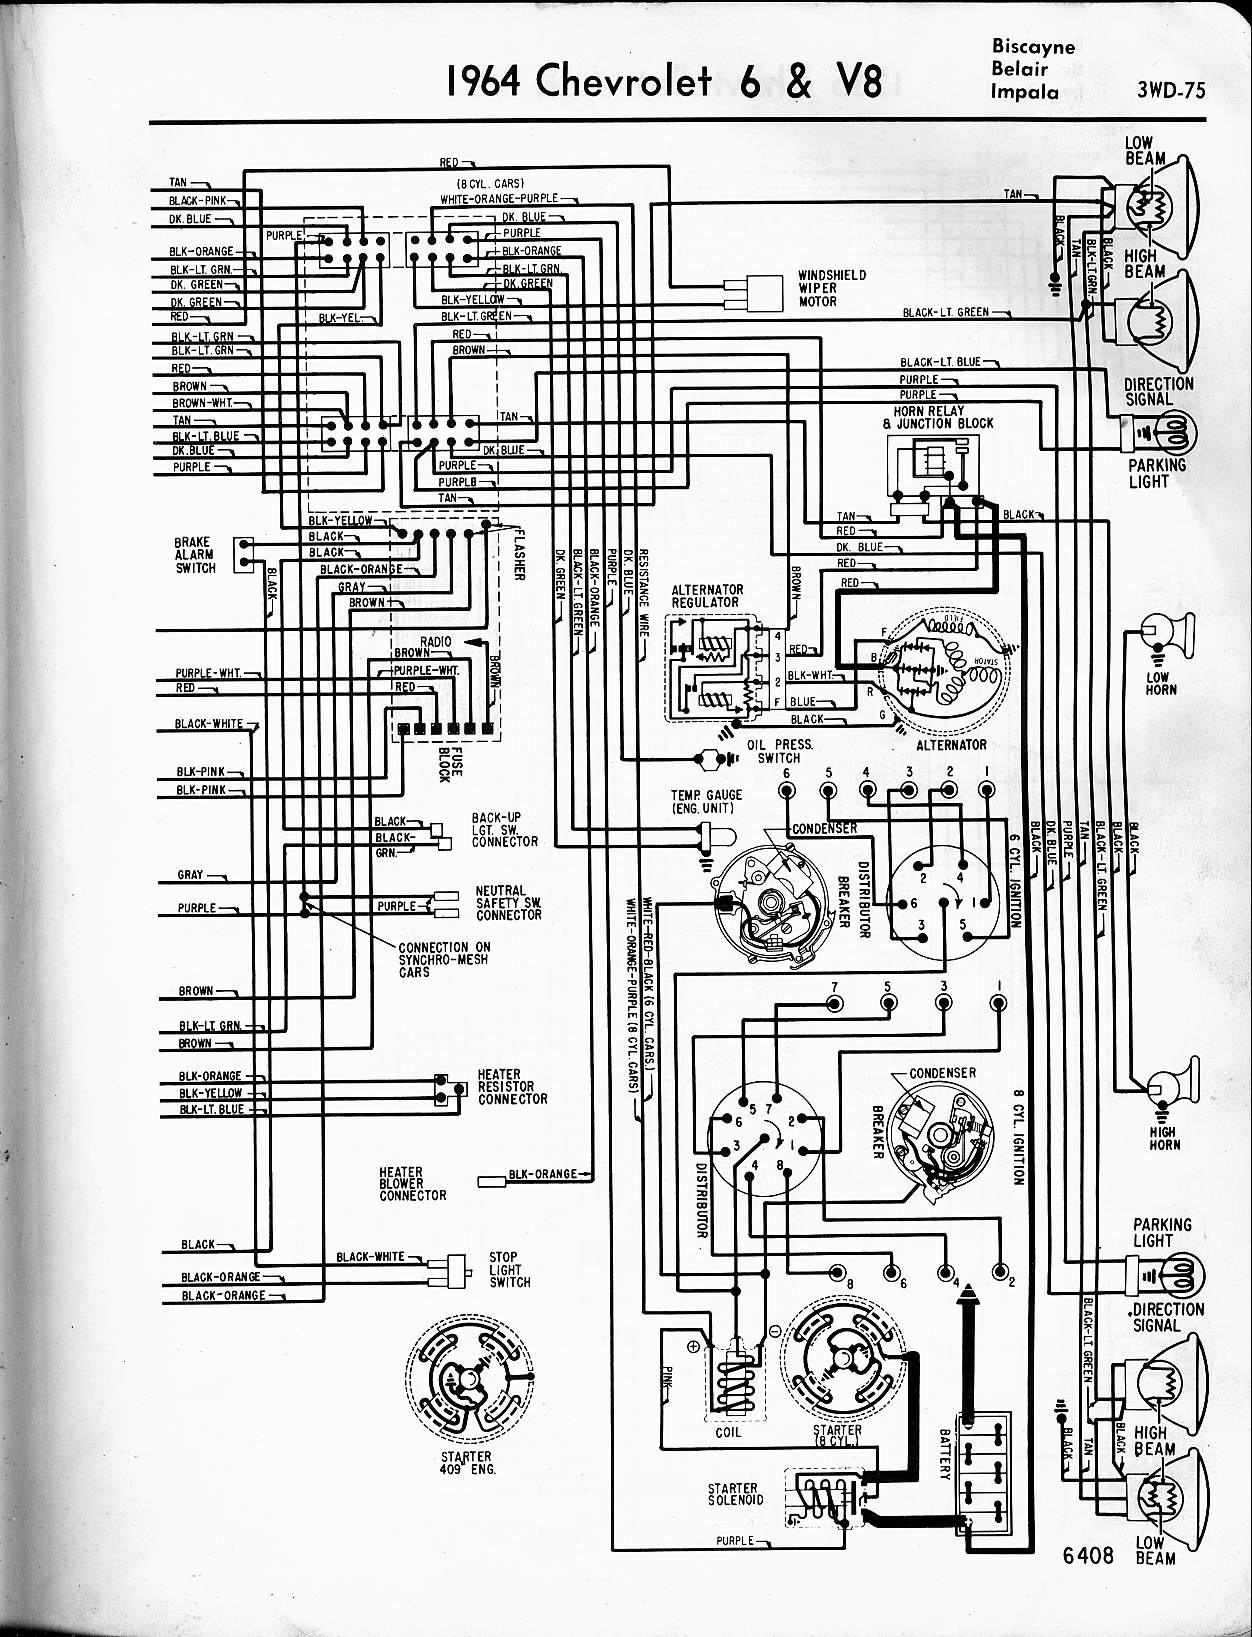 64 Chevy Fuse Diagram Wiring Will Be A Thing 2002 Kia Optima Impala Ignition Help Chevytalk Free Restoration And 2003 Holder